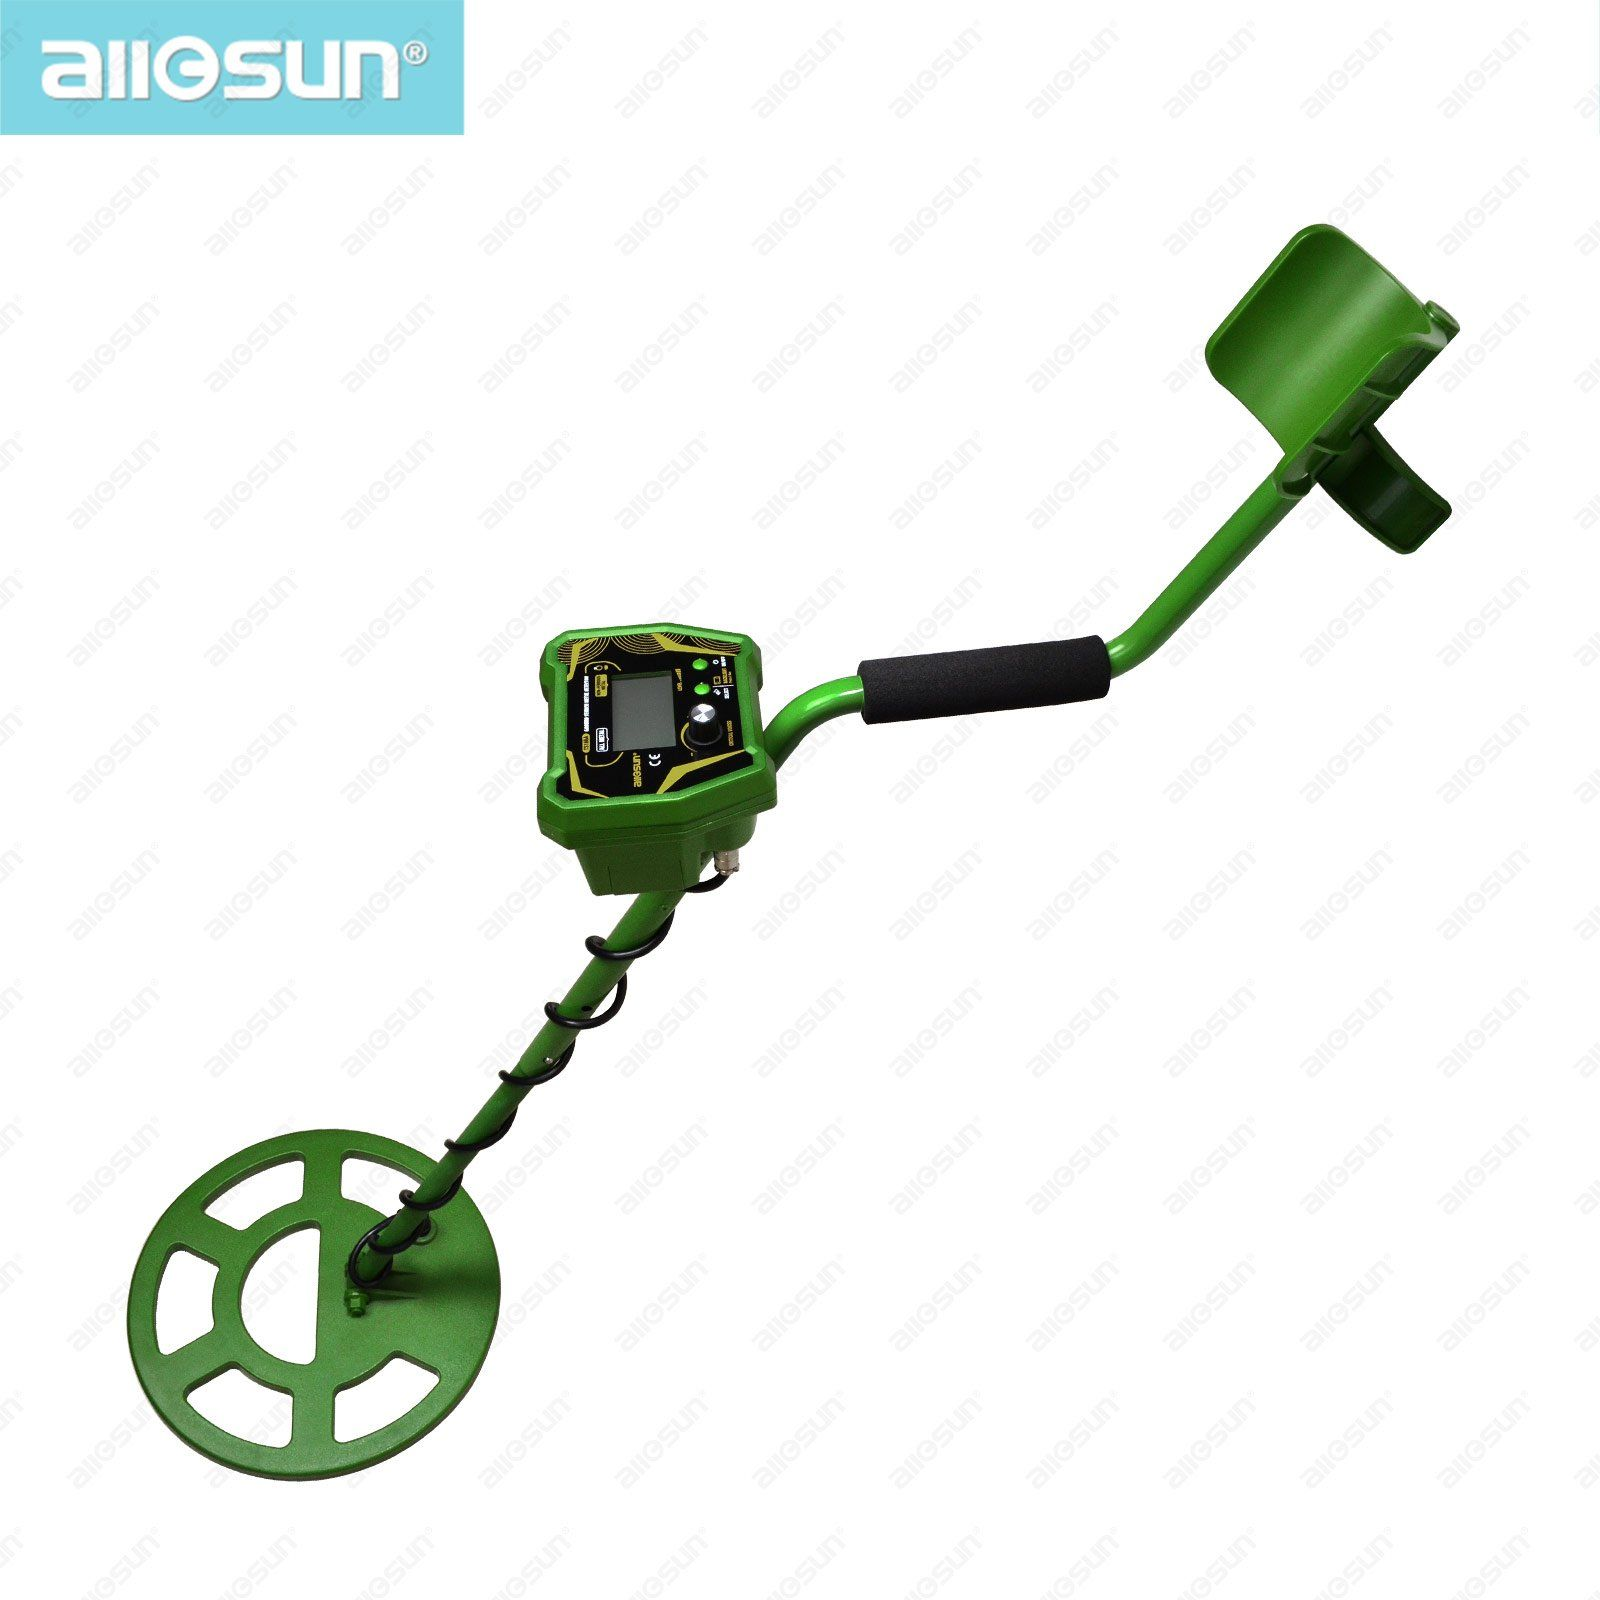 all-sun TS166A Newest Underground Metal Detector Treasure Hunter Practical Metal Detector with High- Pecision